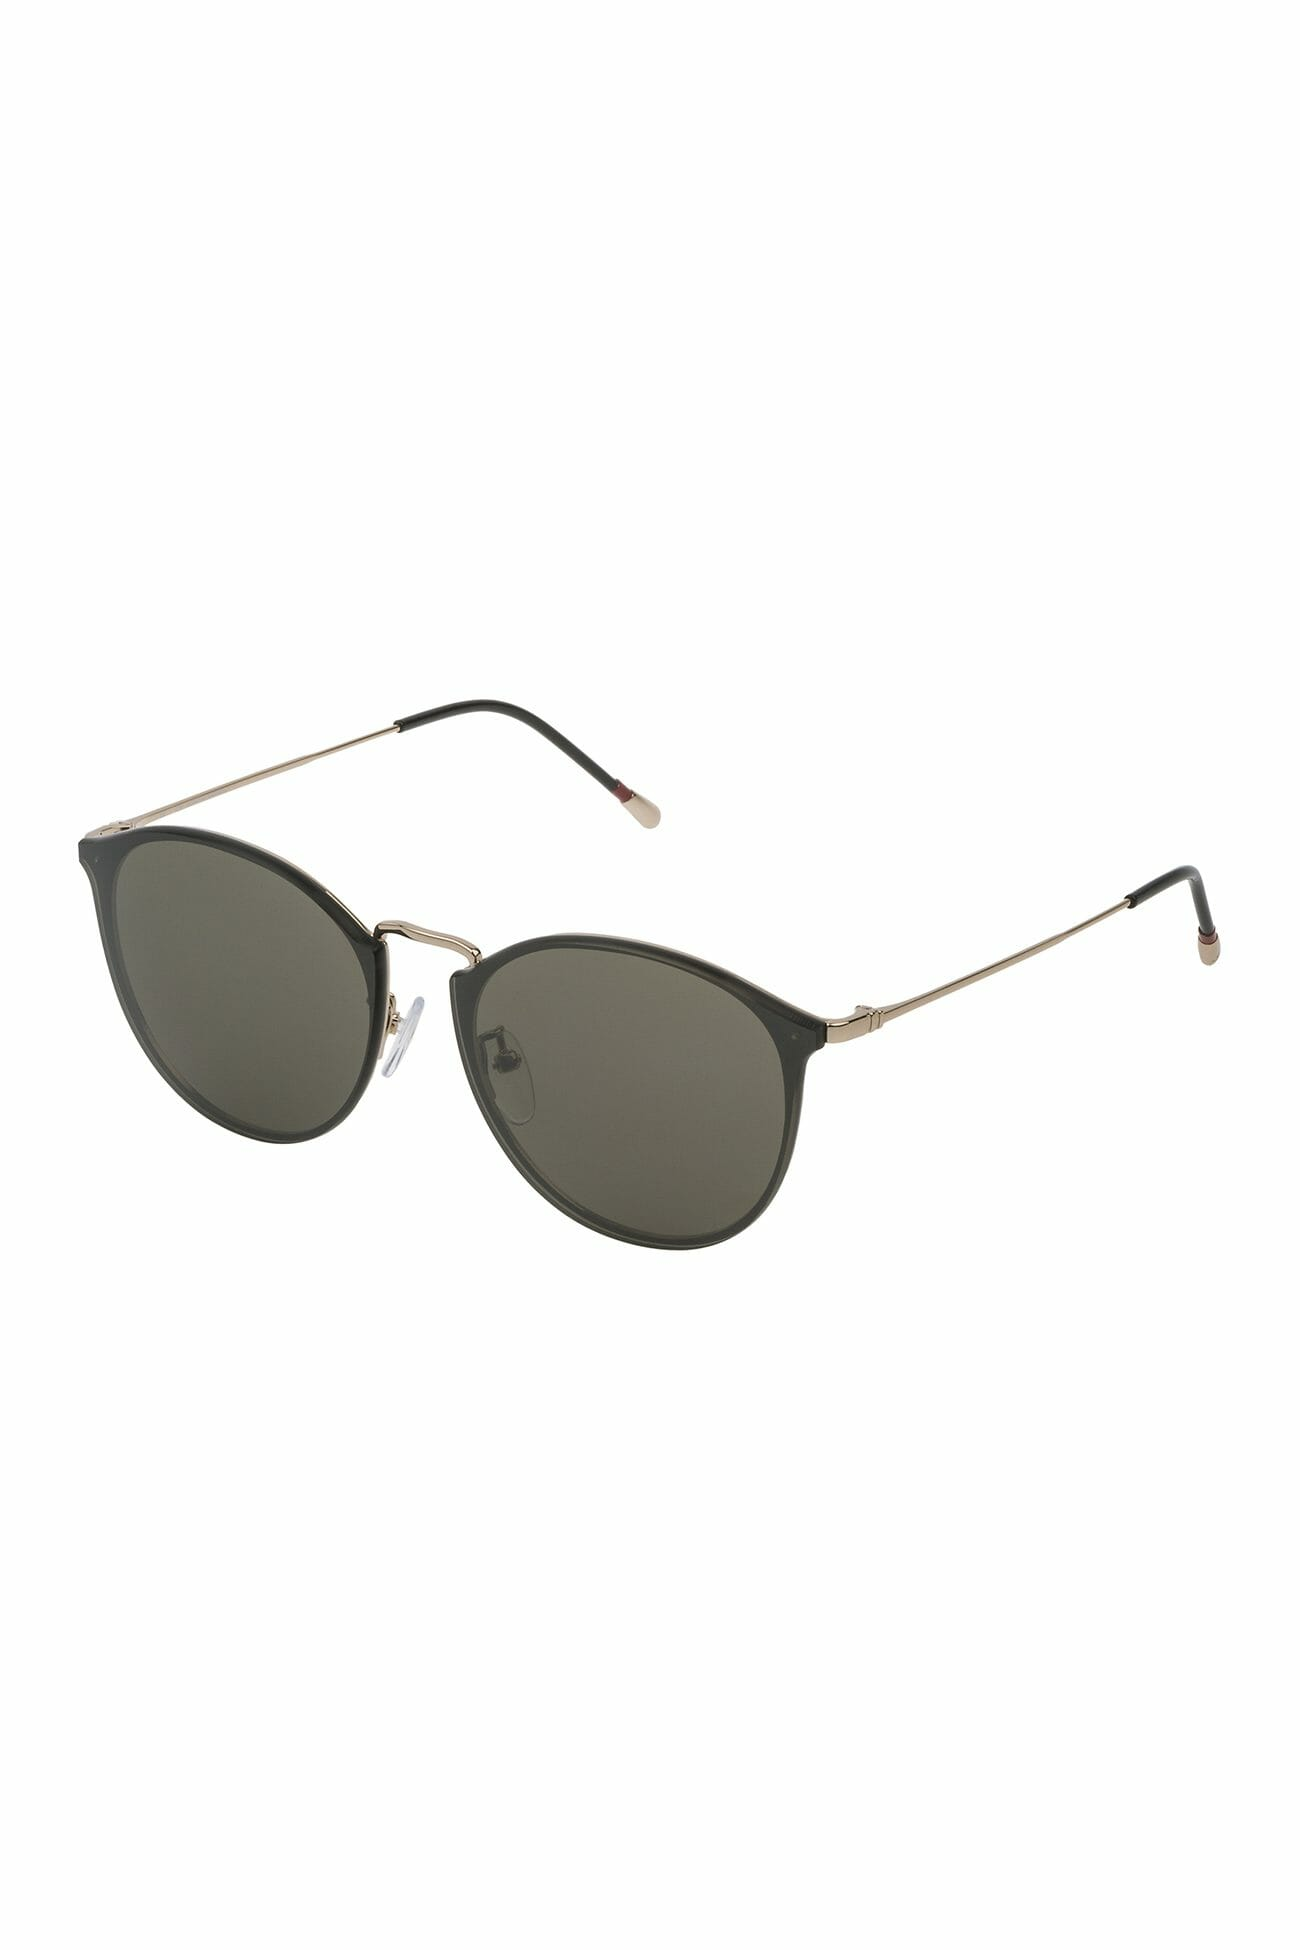 CH-Carolina-Herrera-Eyewear-Men-Sunglasses